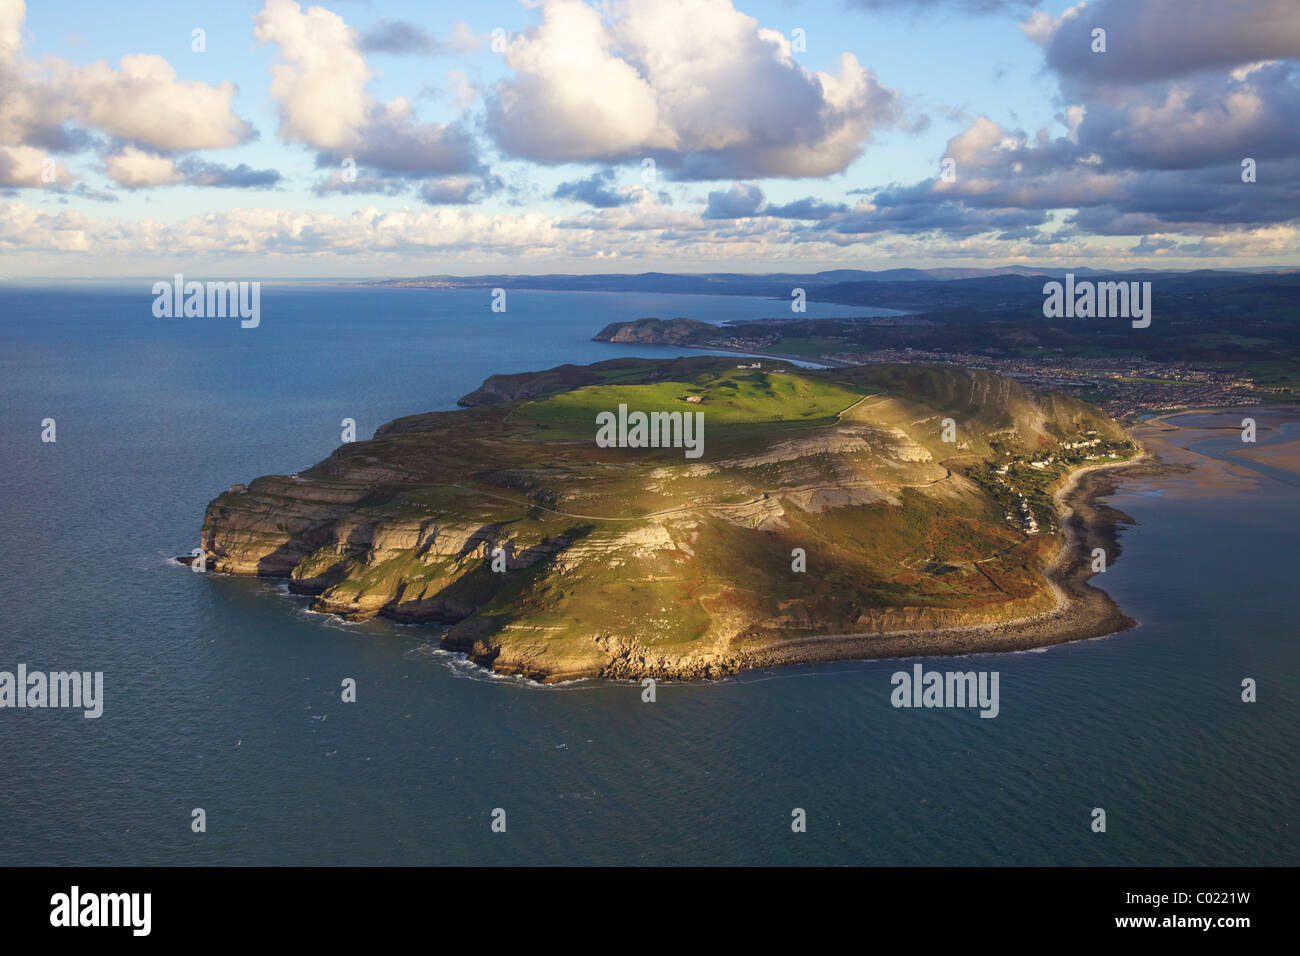 Aerial photograph of the Great Orme, Y Gogarth, or Pen y Gogarth, headland, Llandudno, North Wales, UK - Stock Image